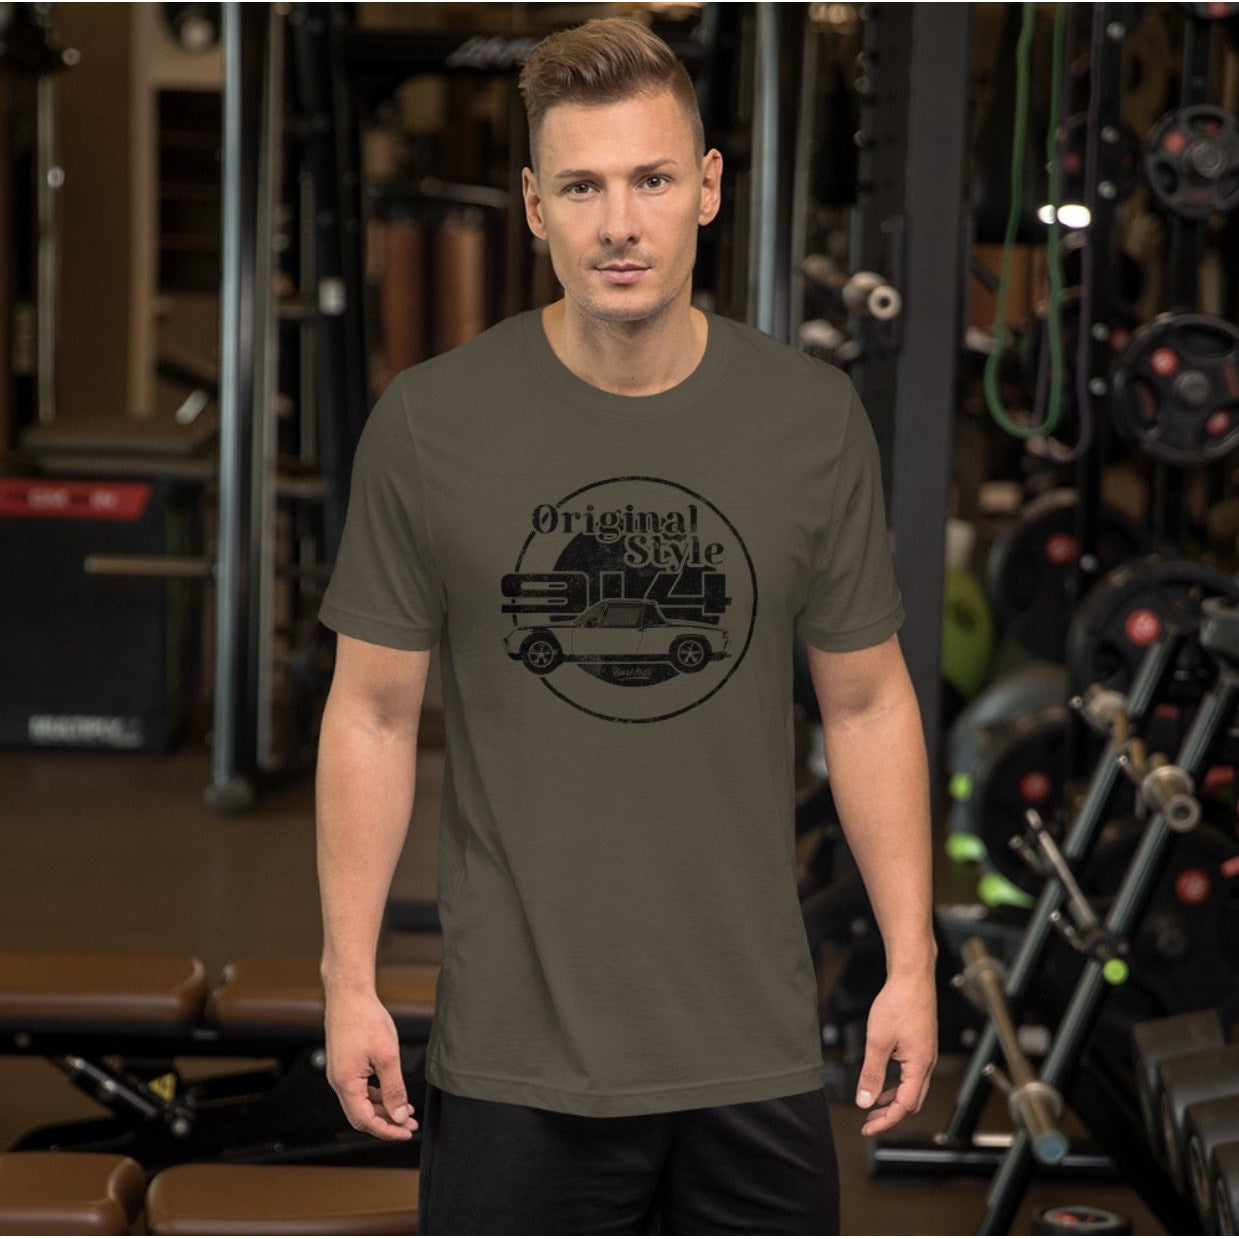 Beard Motors T-Shirt Army 914 Original Style - beardmotors